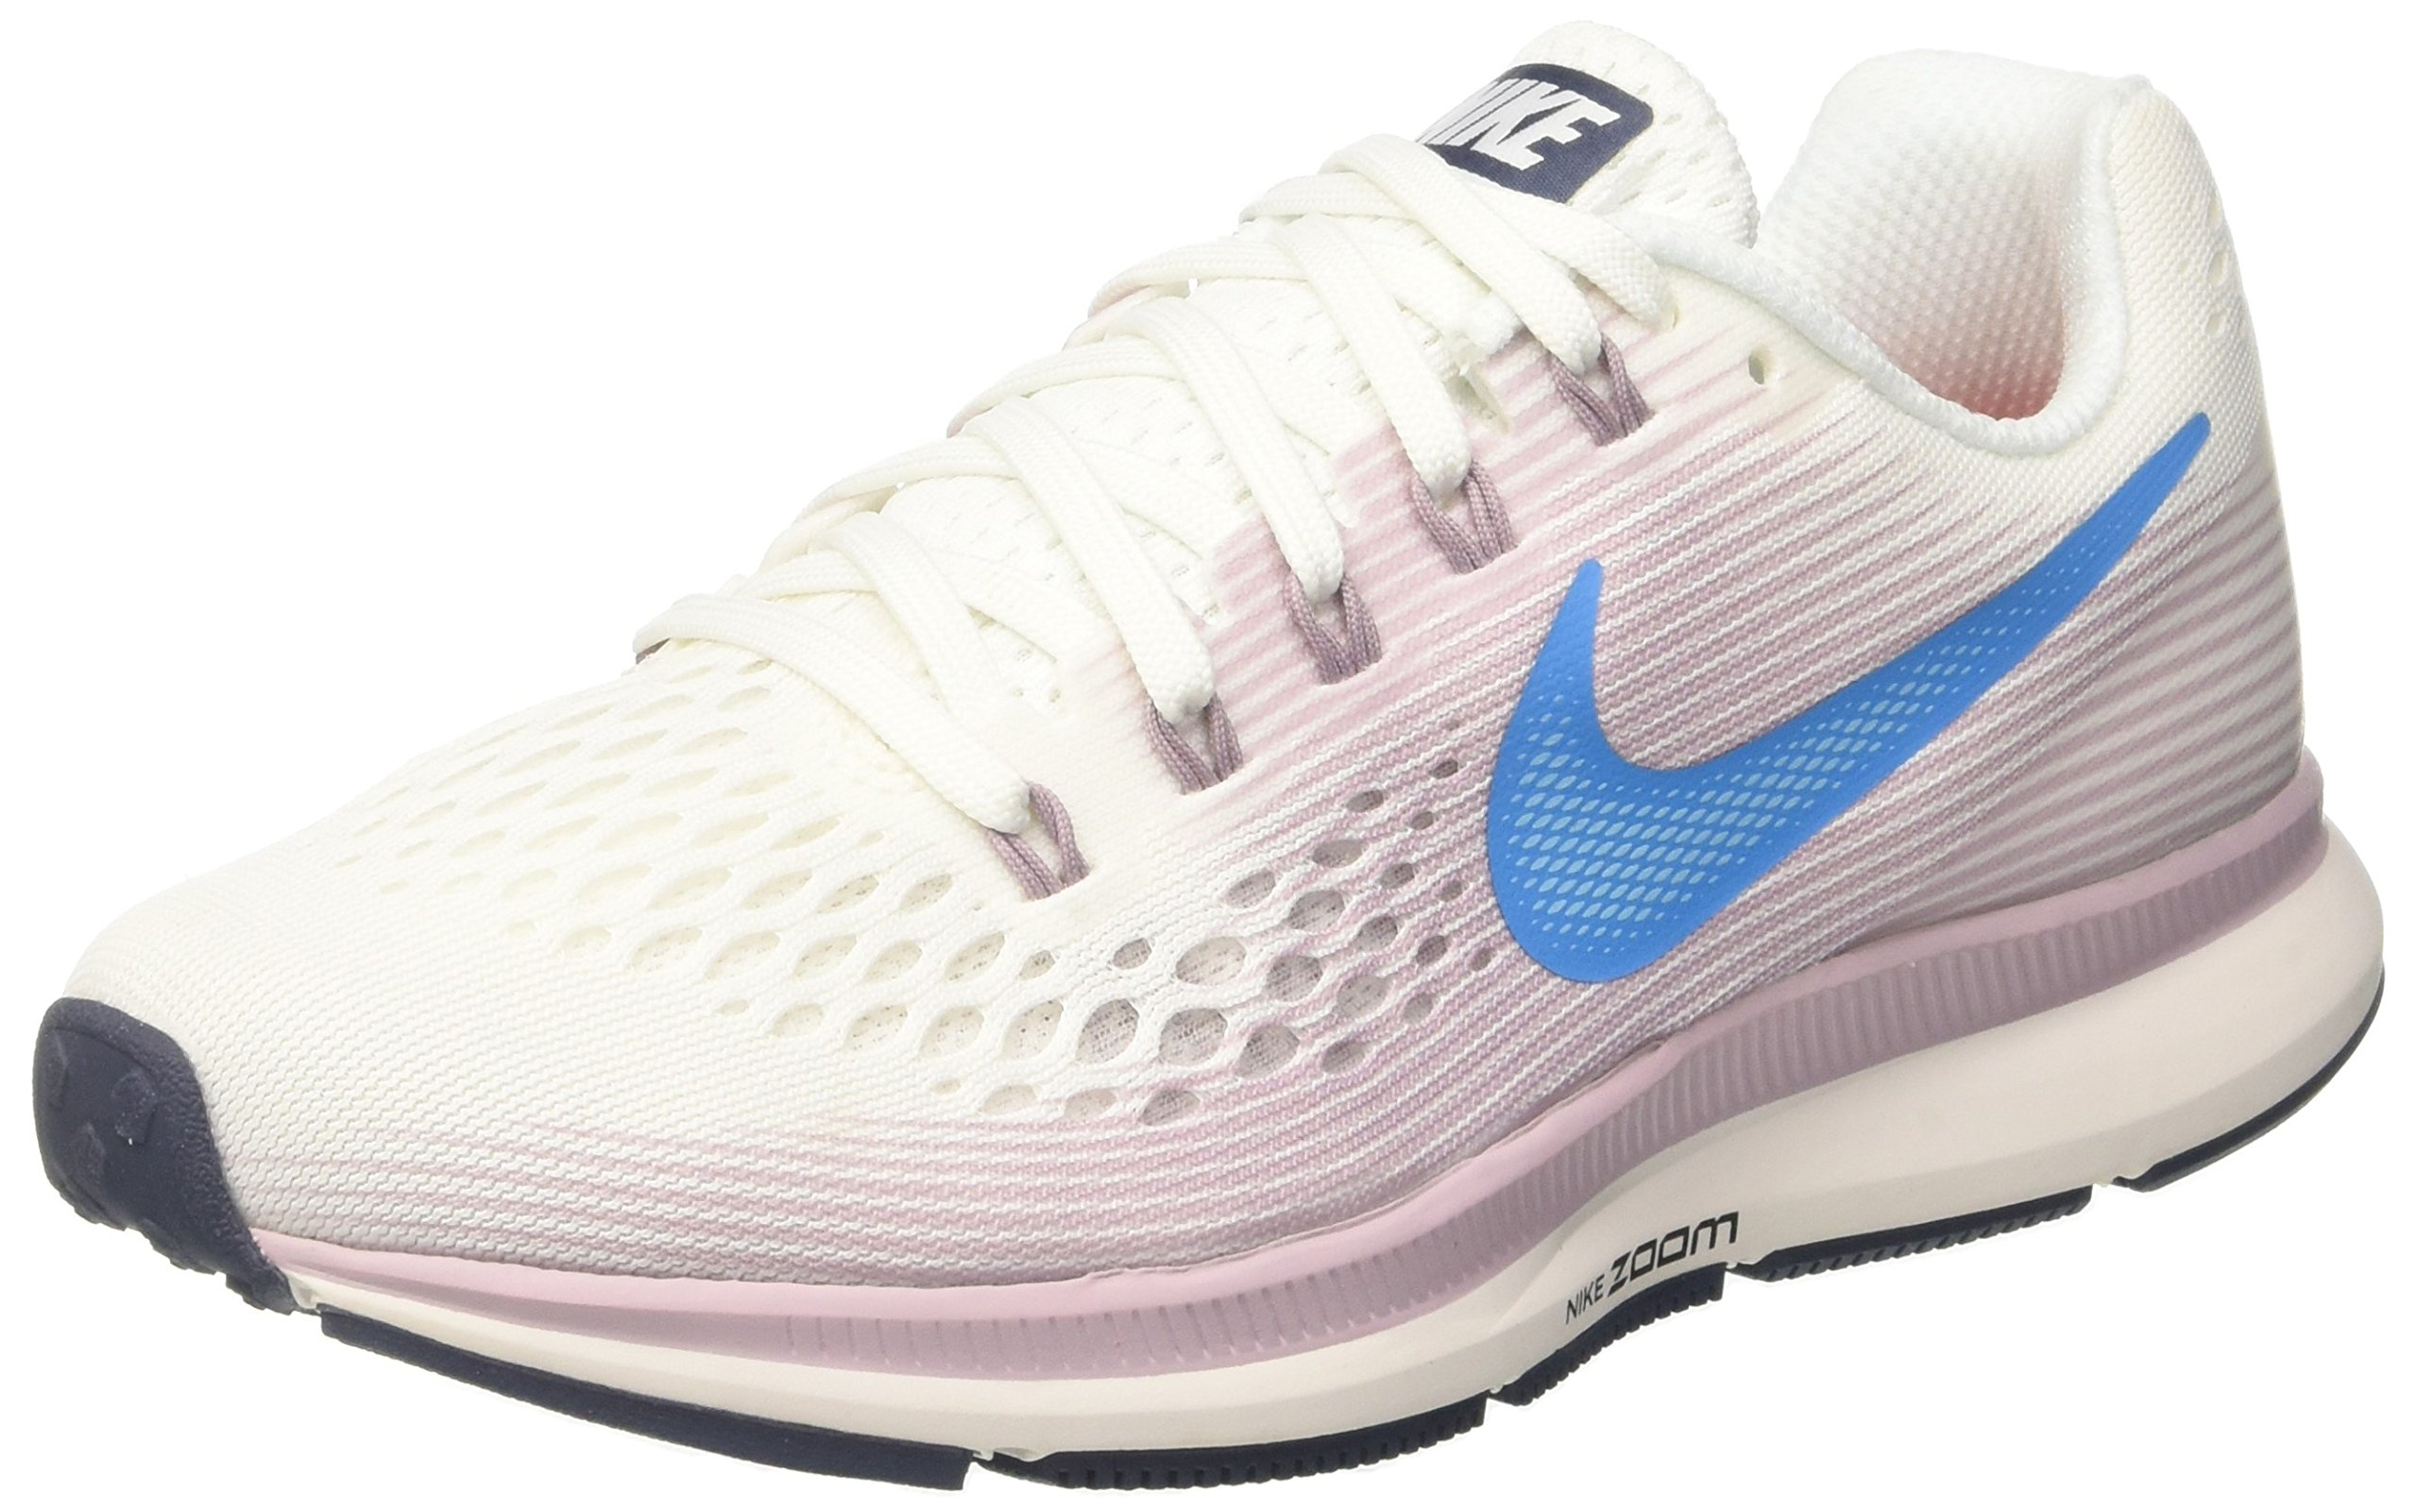 official photos 88965 d9be2 Nike Air Zoom Pegasus 34 Womens Running Shoes